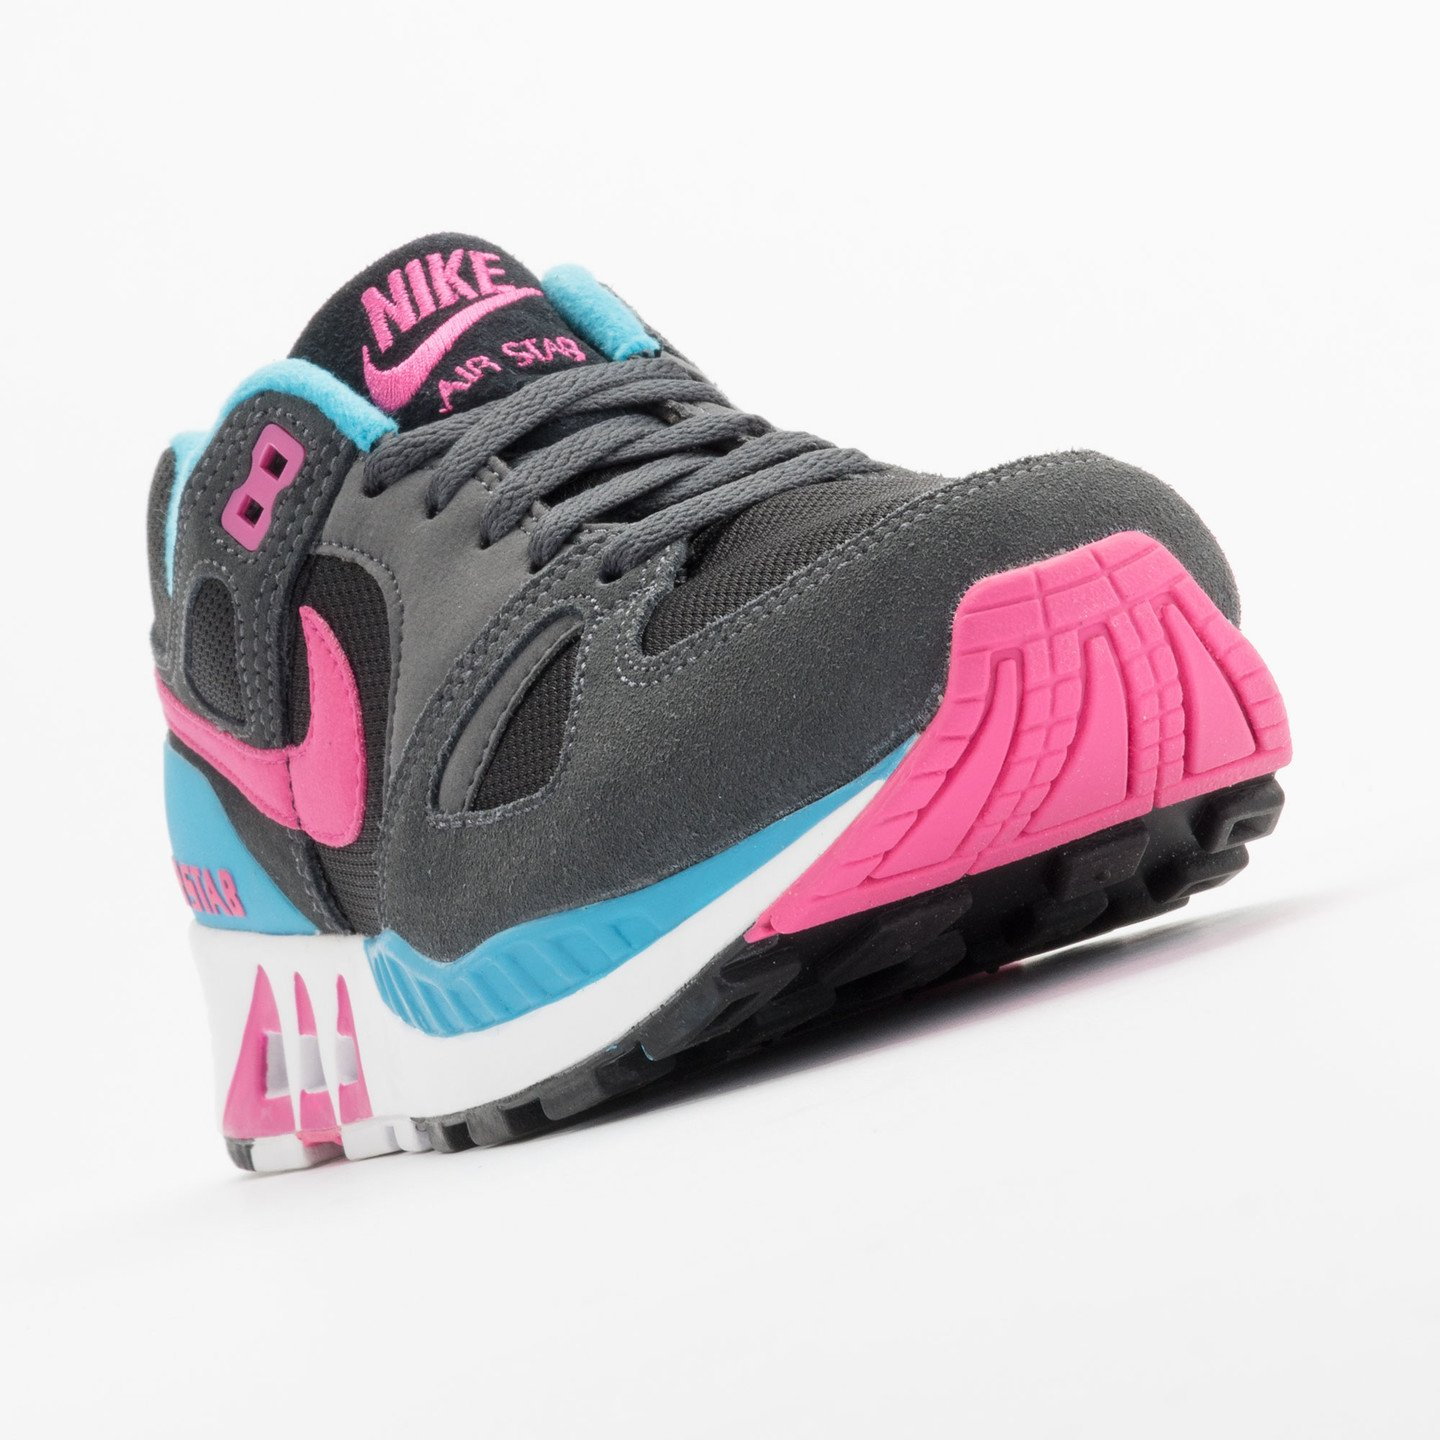 Nike Air Stab Black/Hot Pink-Anthrct-Bl Lgn 312451-004-40.5